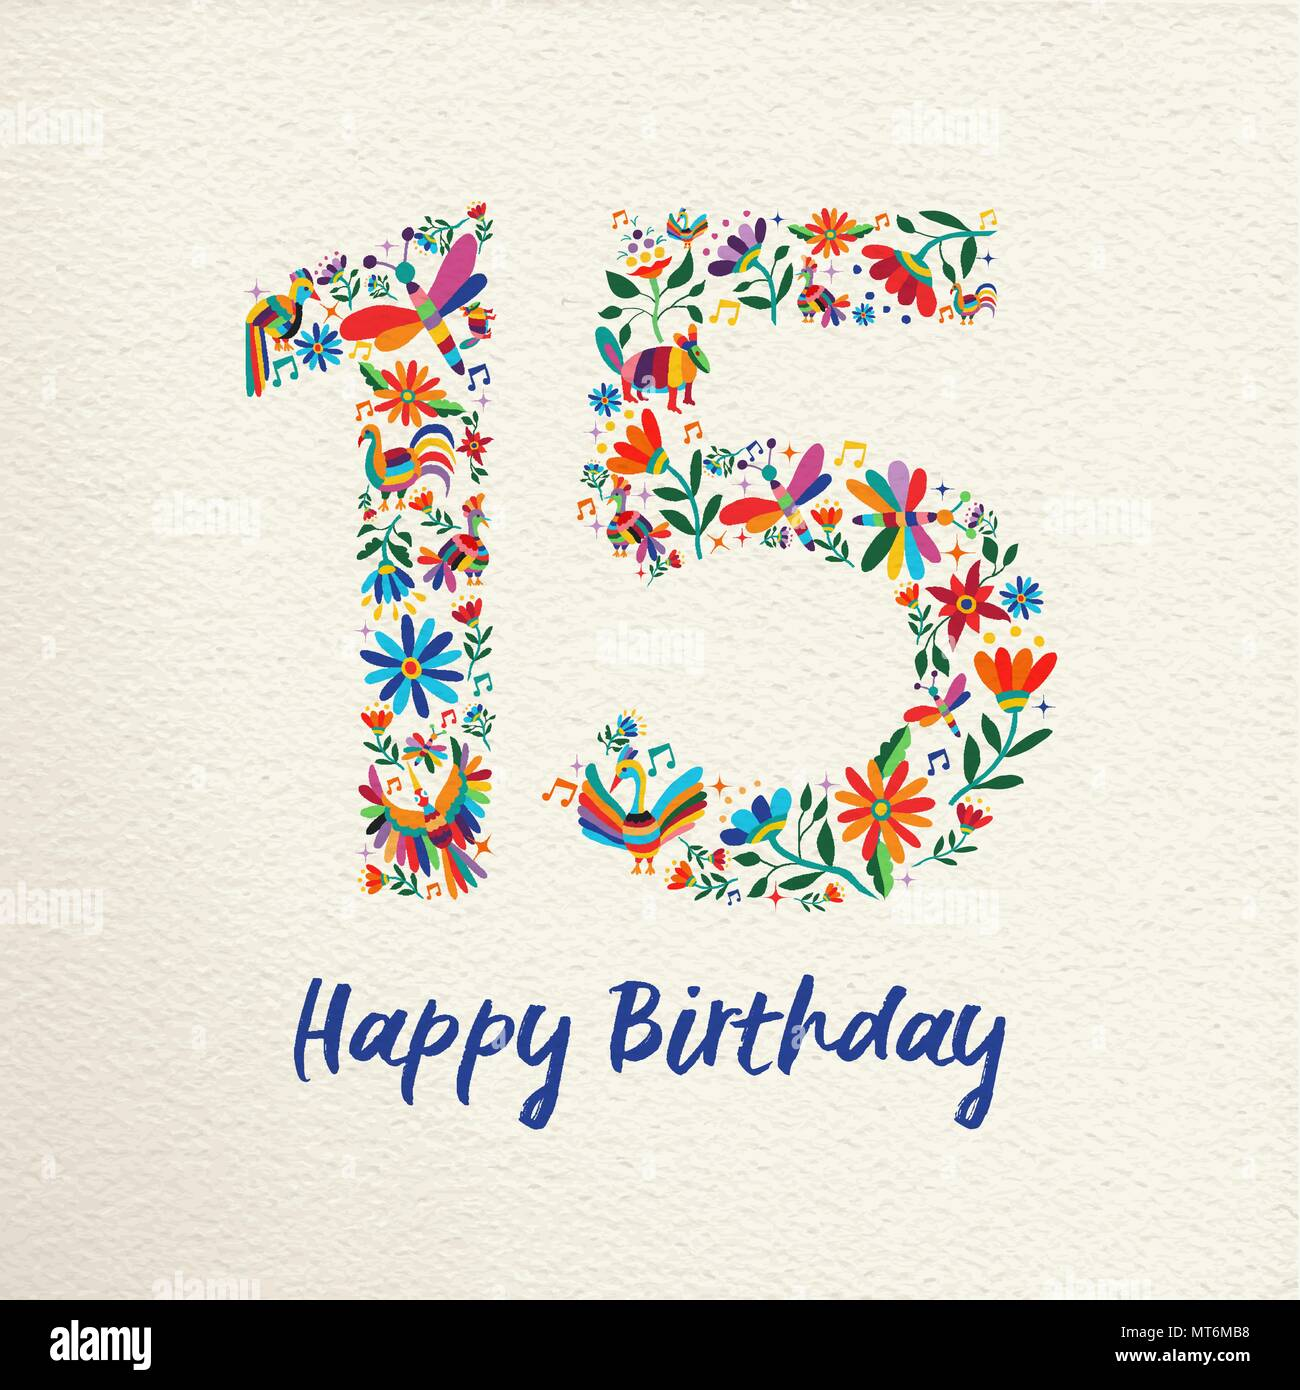 Happy birthday 15 fifteen years design with number made of colorful happy birthday 15 fifteen years design with number made of colorful spring flowers and animals on paper texture background ideal for party invitation filmwisefo